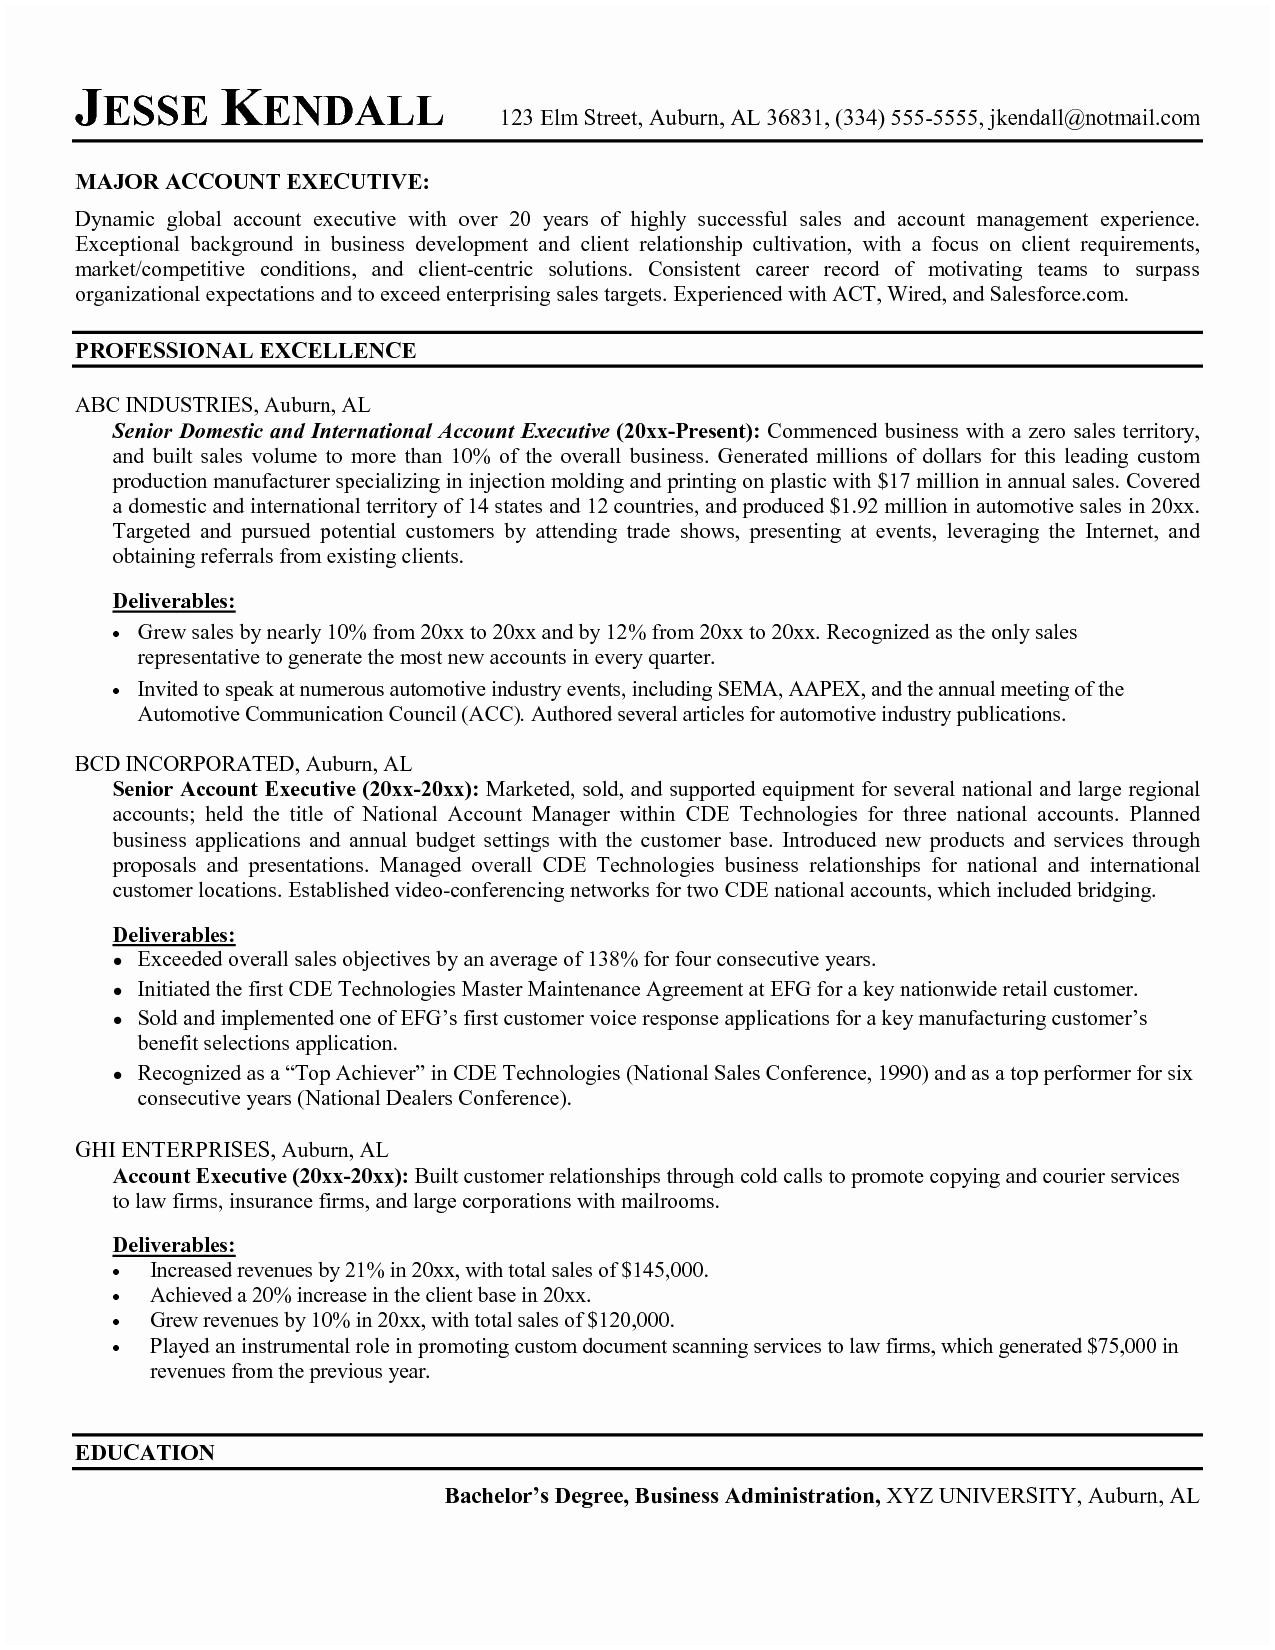 auburn resume template Collection-Resume format Accounts Executive Best Resume Template for Management New Painter Resume 0d 9-b